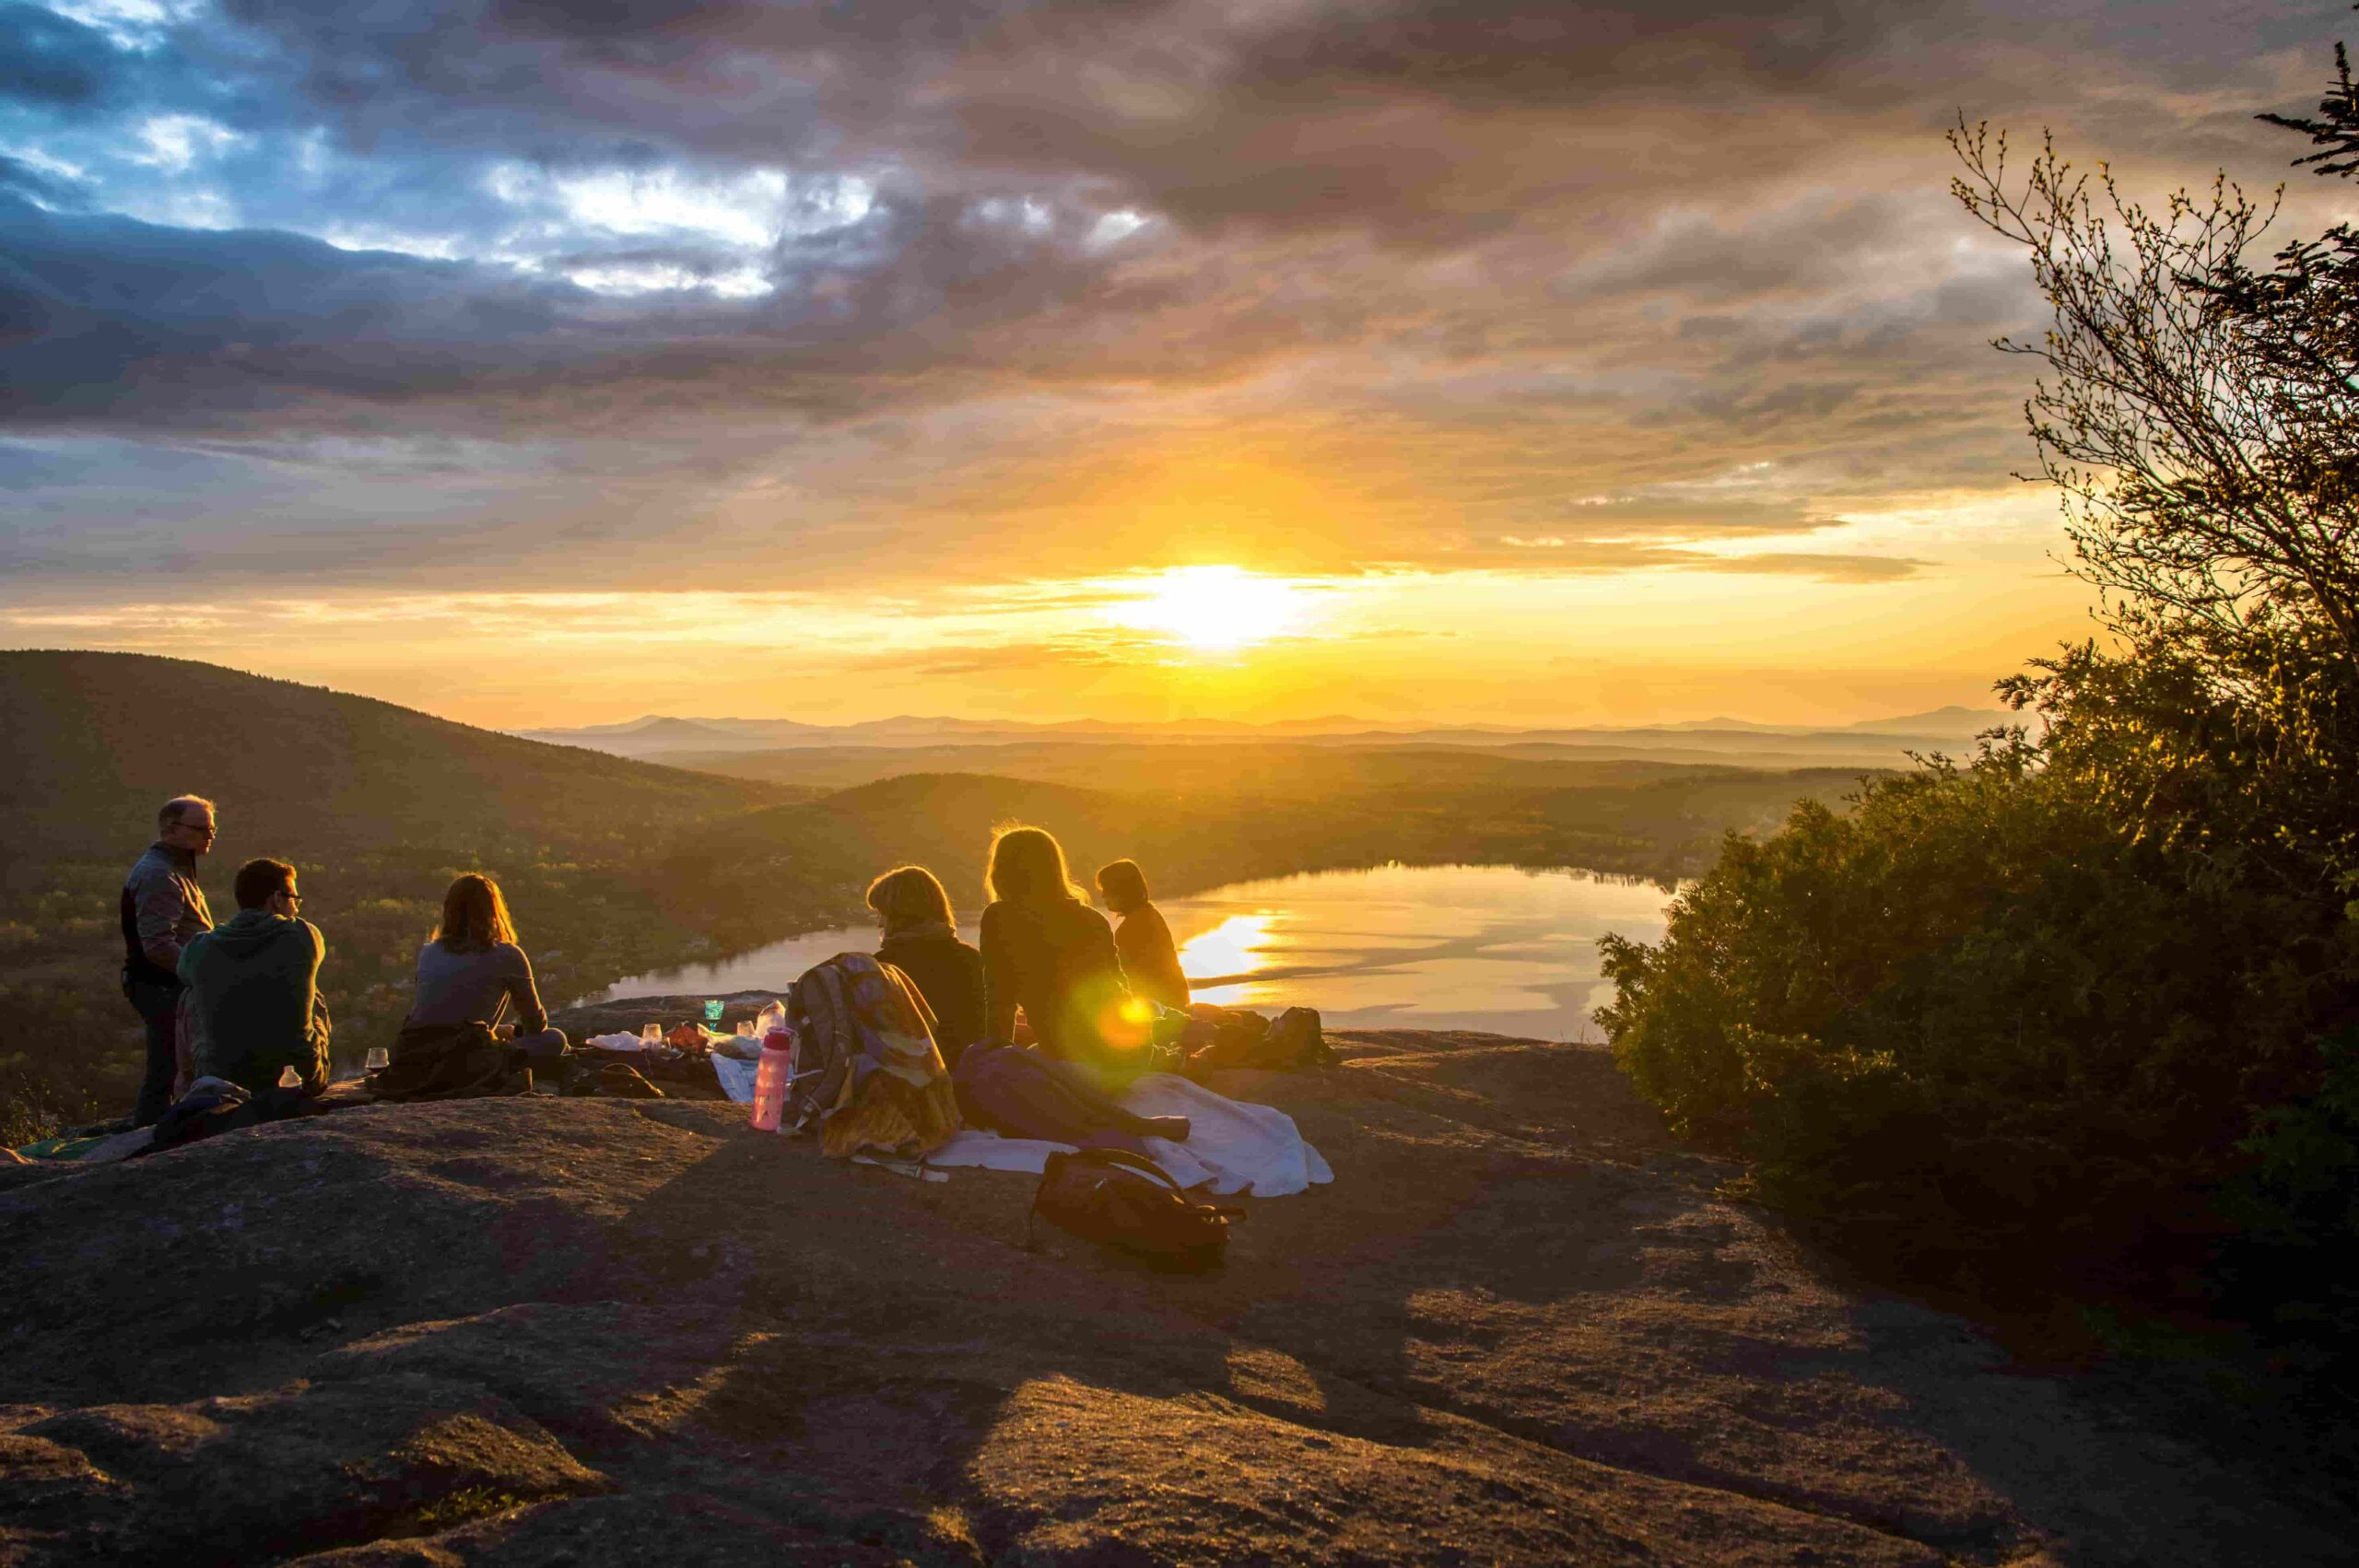 Group of travellers having sunset picnic